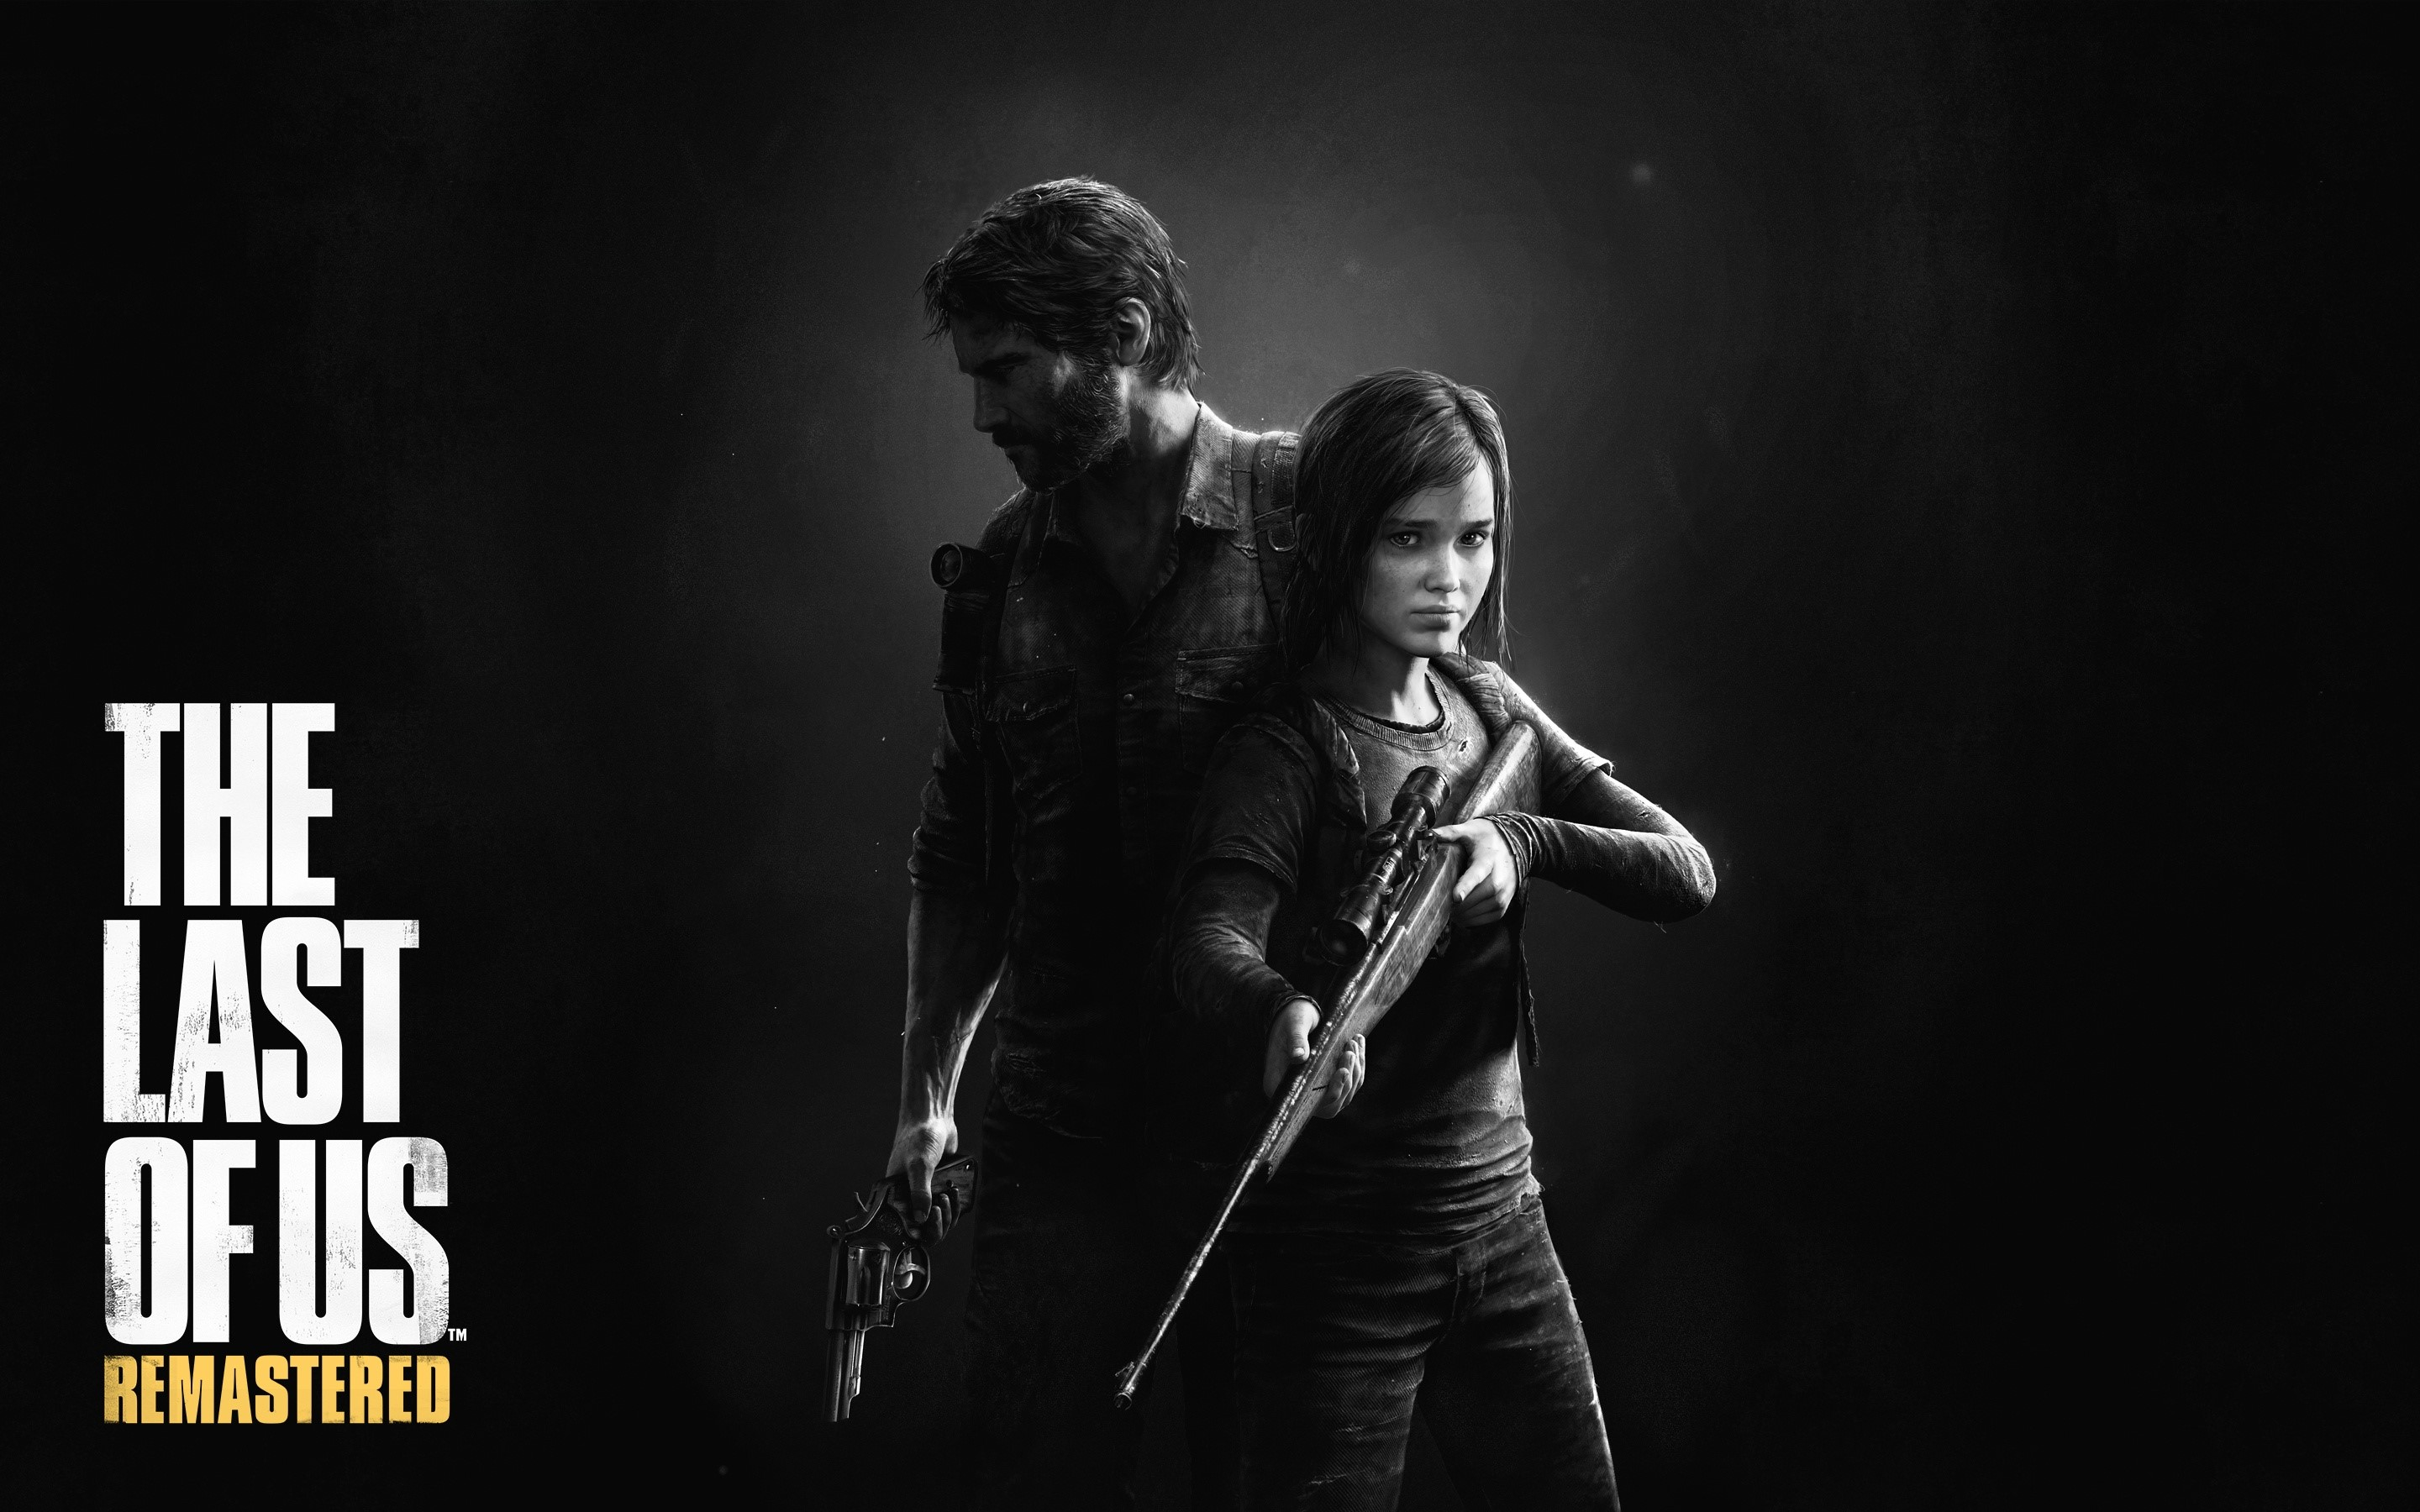 Fondos de pantalla The last of us remasterizado